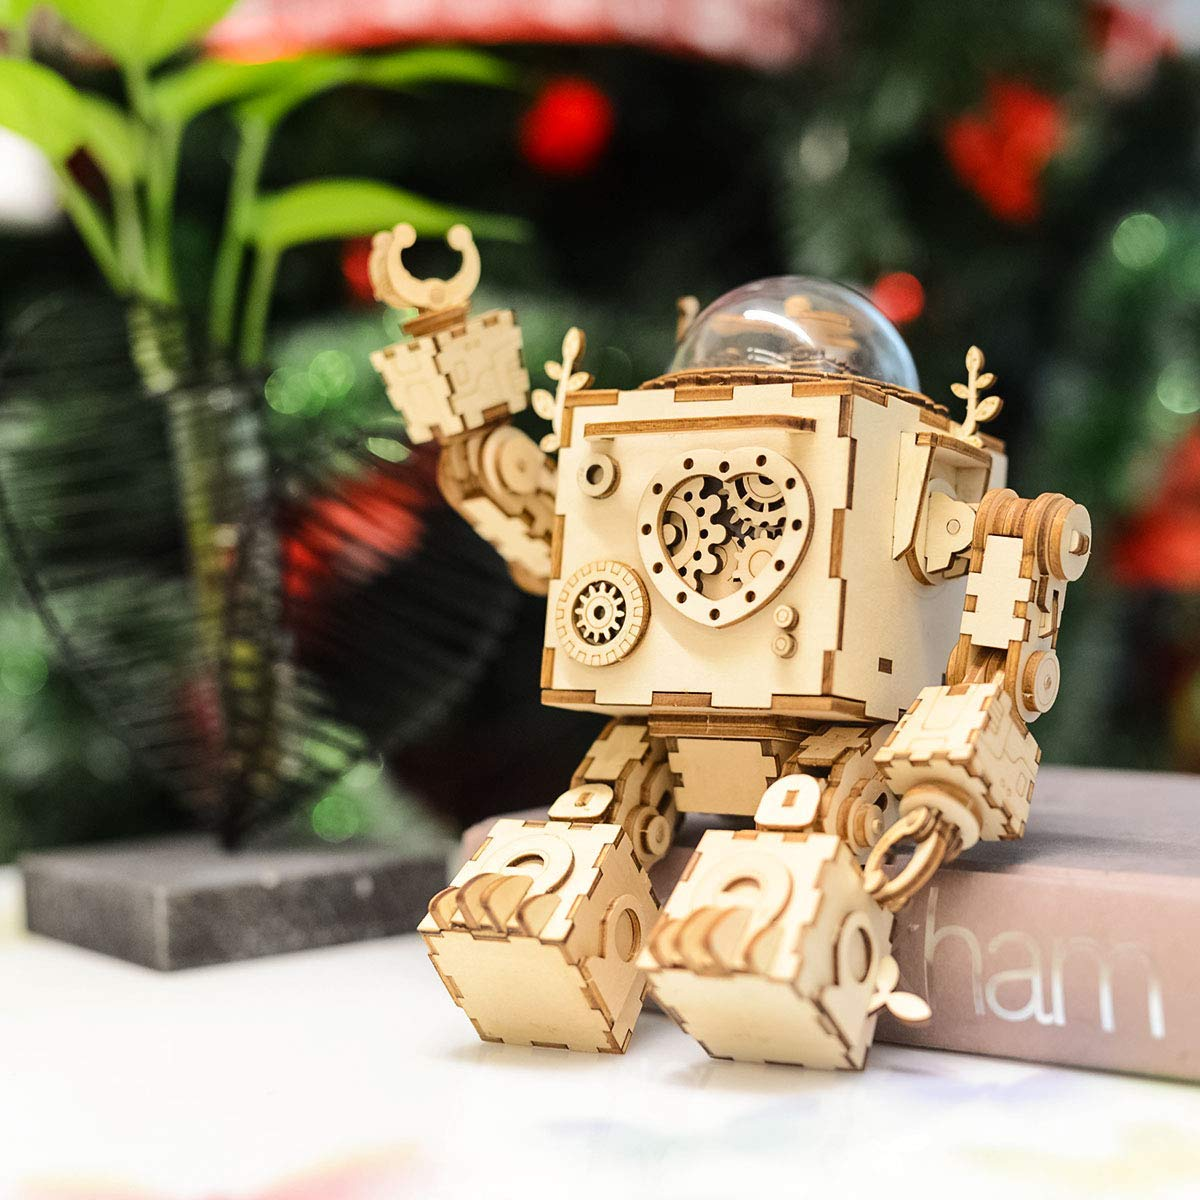 Eggschale 3D Puzzle Music Box Kit DIY Wooden Robot Musical Box Orpheus with LED Light Best Gifts for Kids and Adults/Boys and Girls Birthday Halloween Christmas